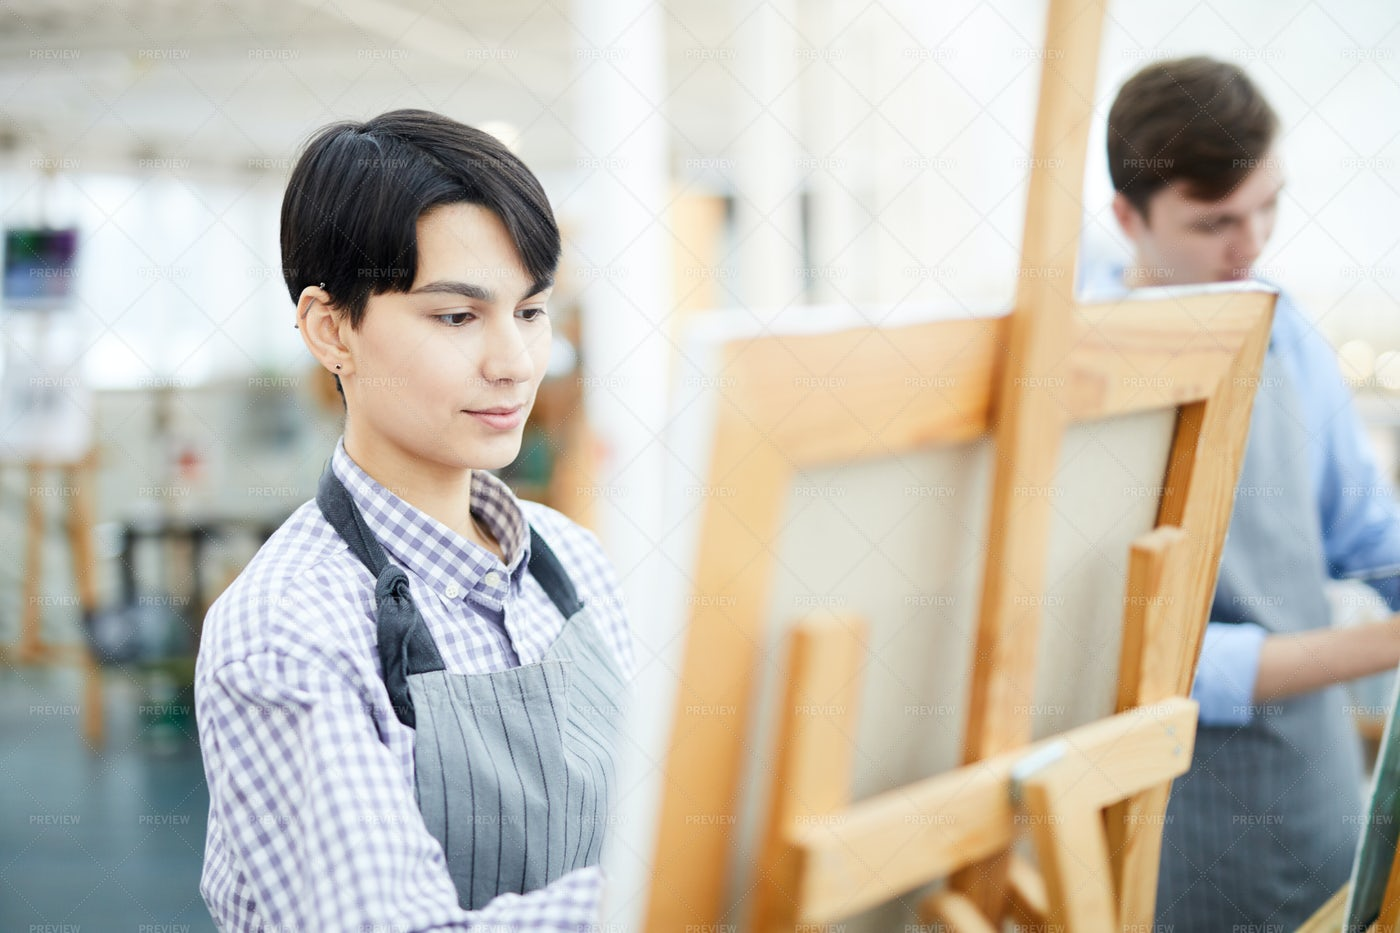 Female Artist Painting On Easel: Stock Photos